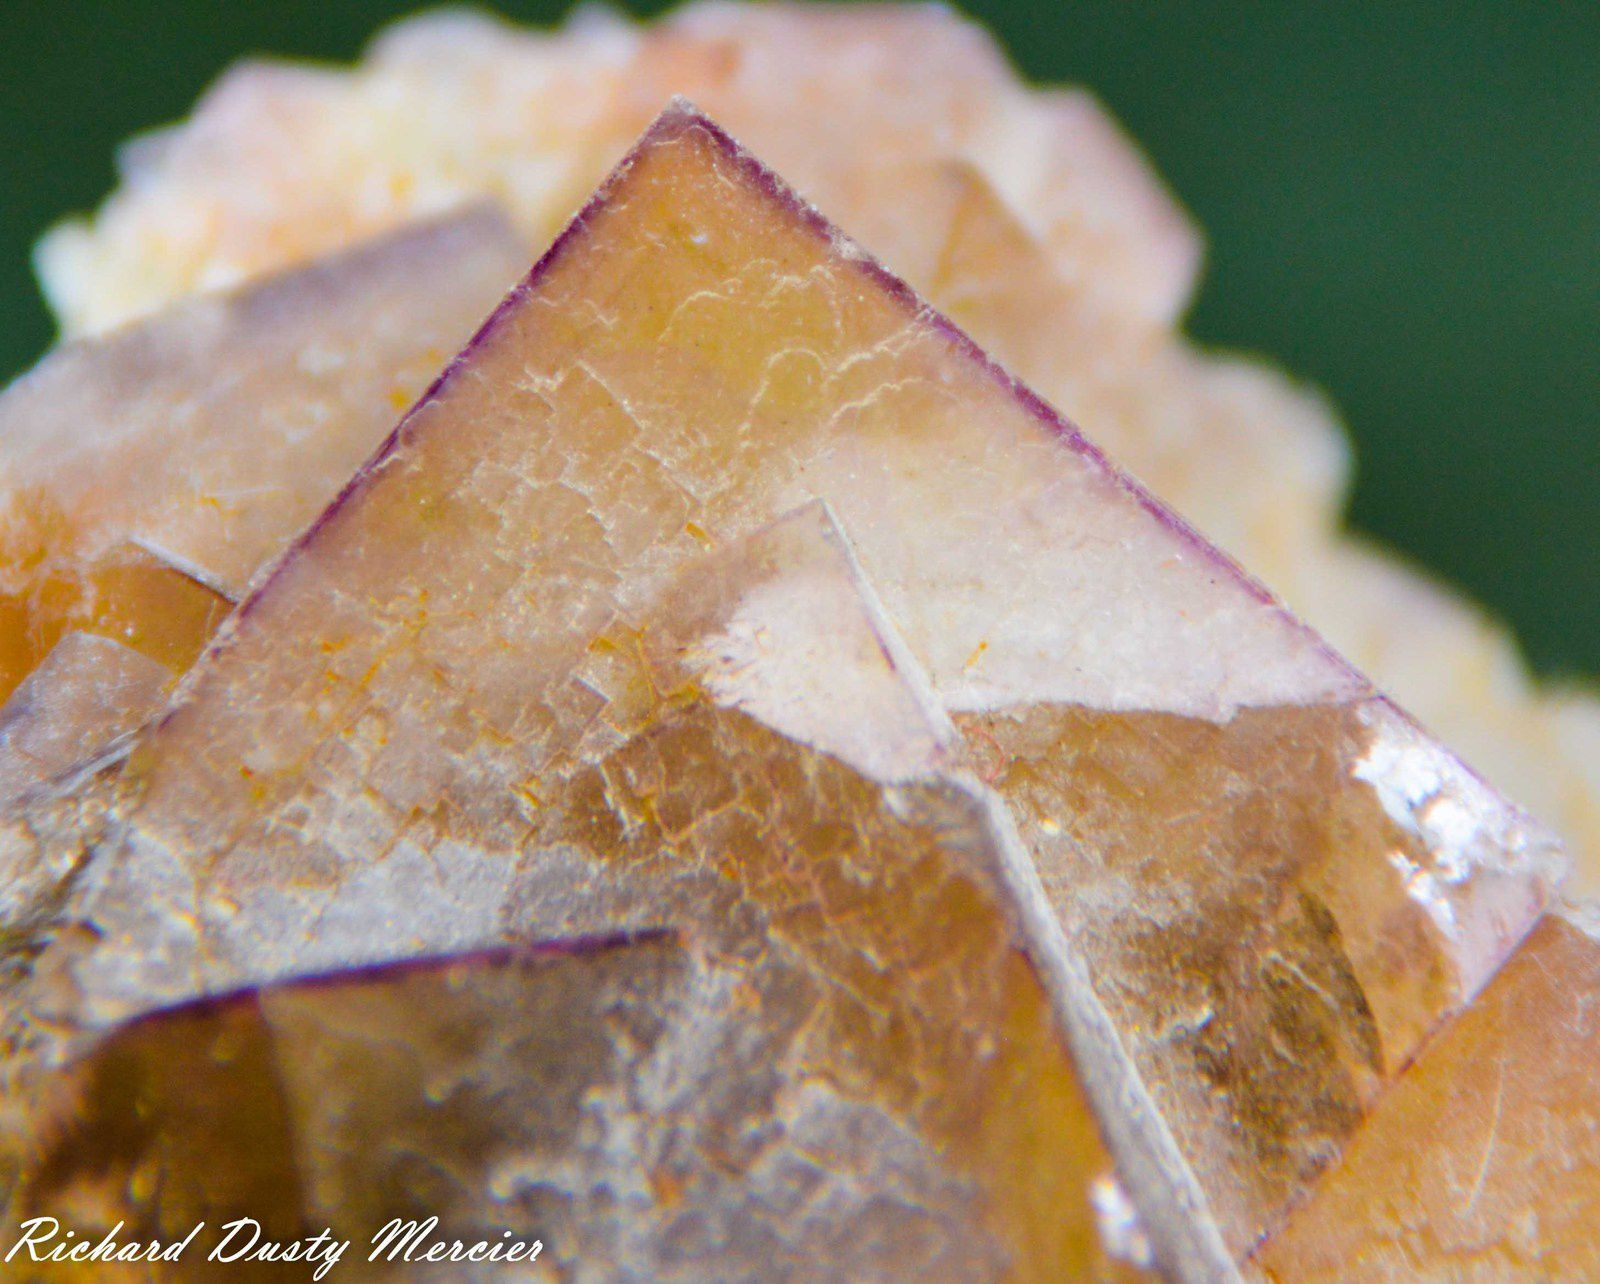 Fluorite from Arbouet, Pyrénées-Atlantiques, France (size: Small cabinet)